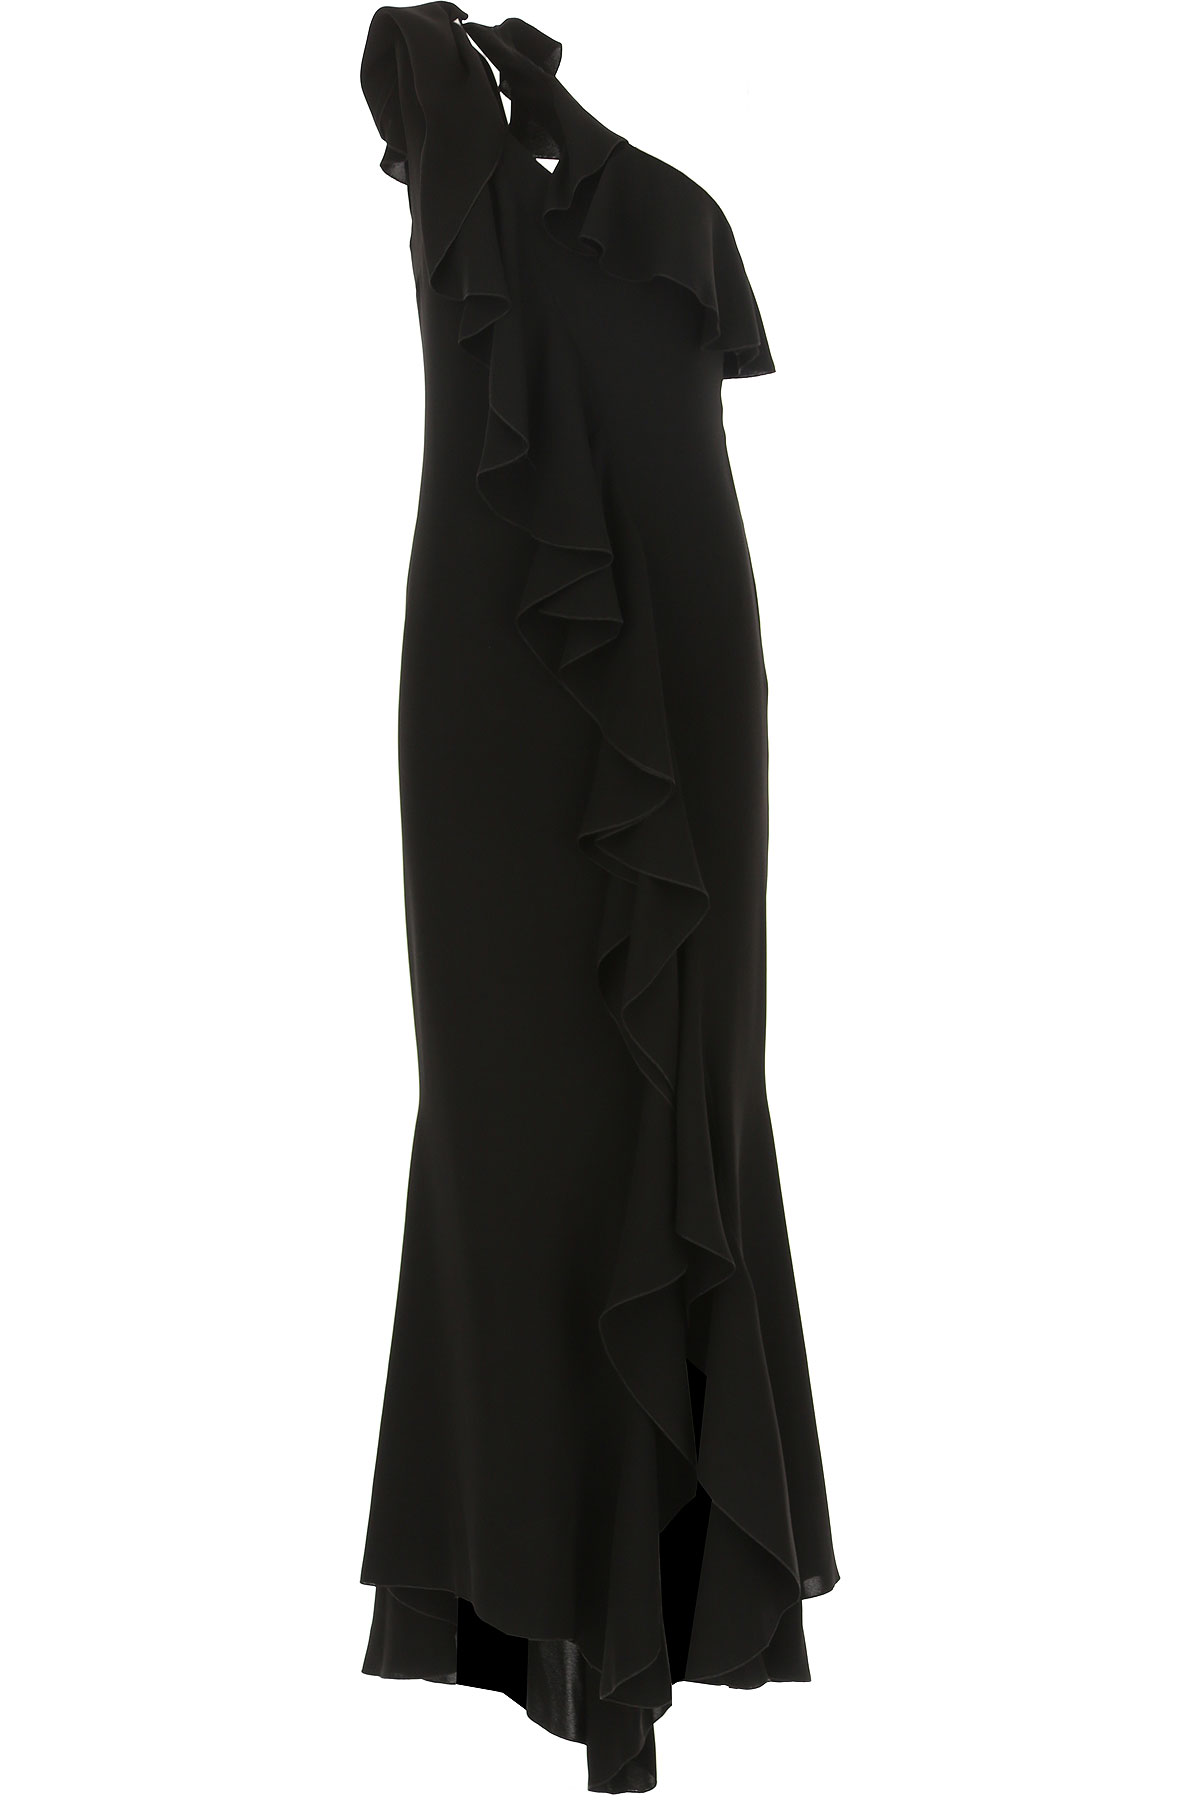 Hanita Dress for Women, Evening Cocktail Party On Sale, Black, polyester, 2019, 4 8